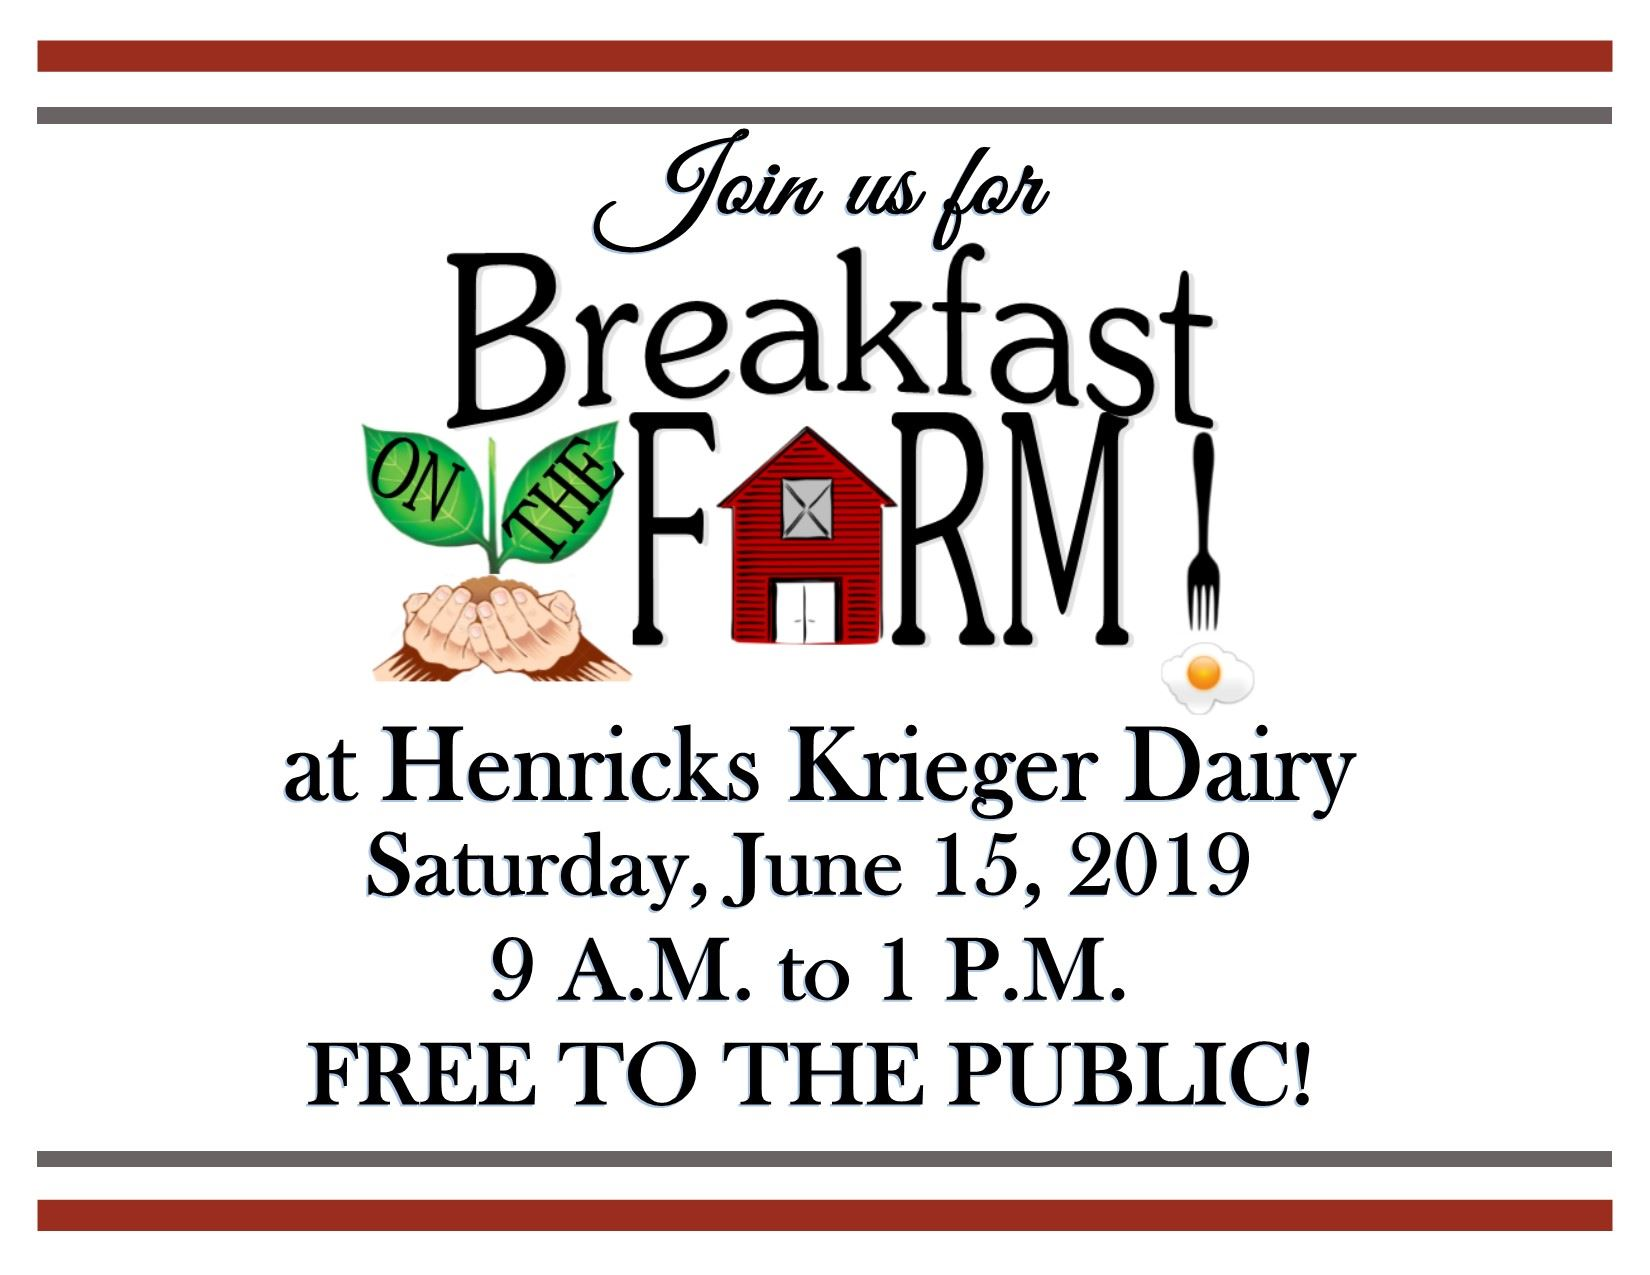 Breakfast on the Farm June 15, 2019